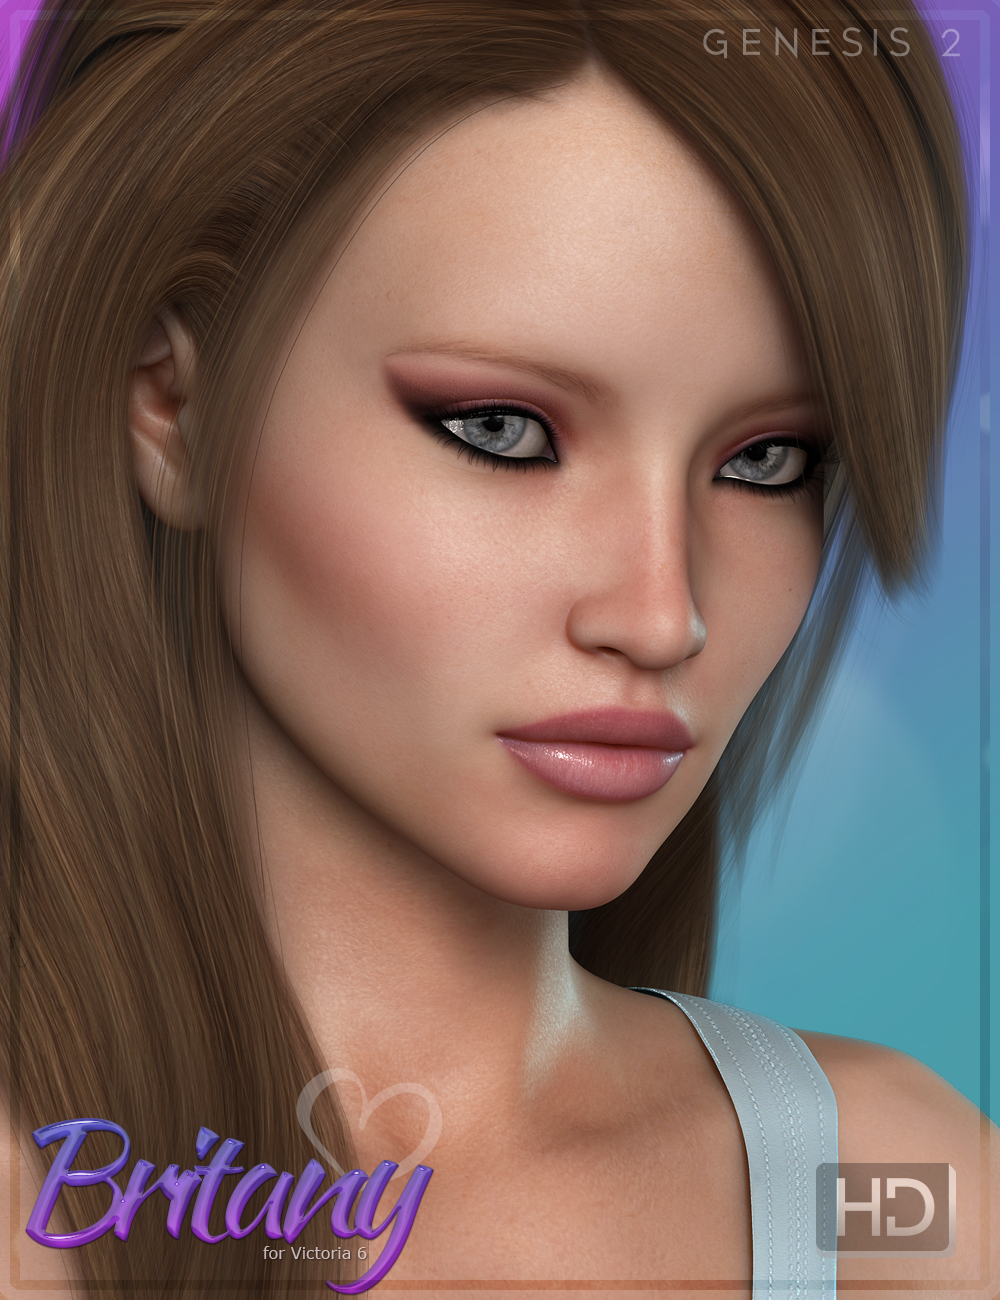 FWF Britany HD - Character and Dress by: Fred Winkler ArtFisty & Darc, 3D Models by Daz 3D